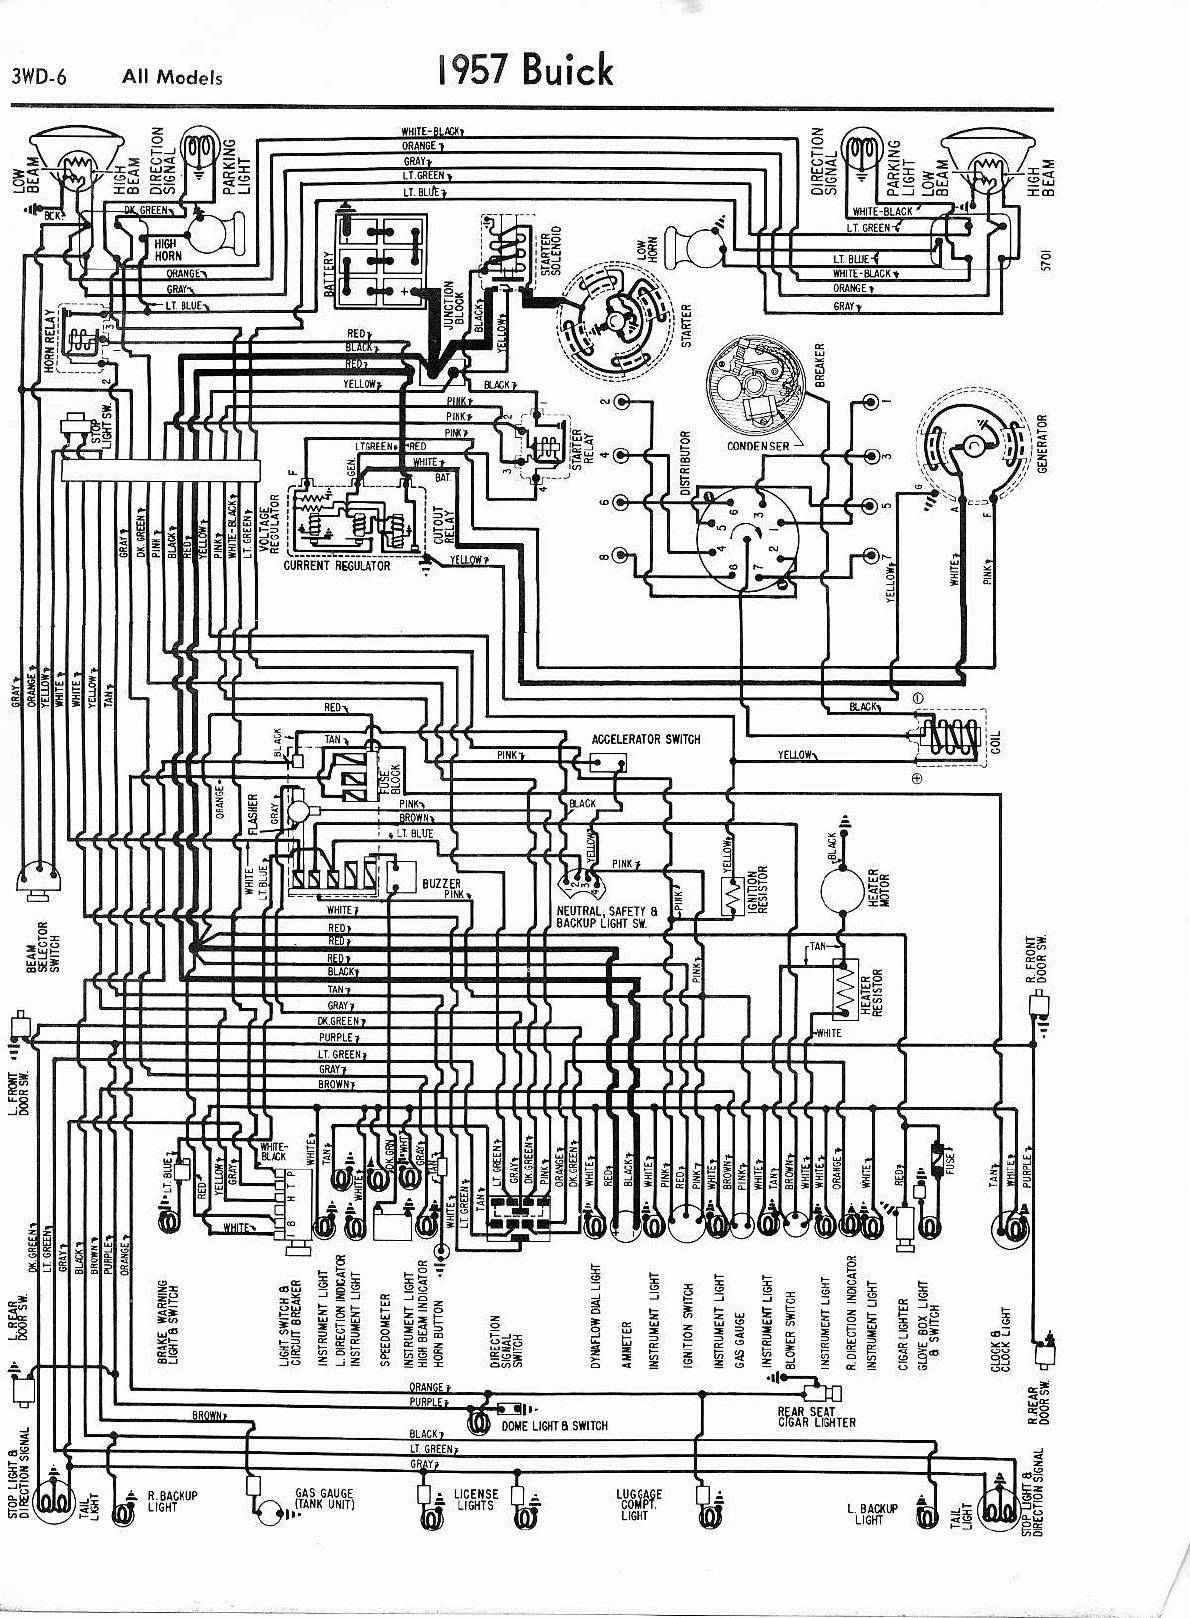 Buick Enclave Wiring Schematics List Of Schematic Circuit Diagram 2008 1957 1960 Misc Documents Diagrams Pdf Rh Manuals Co Radio Lacrosse